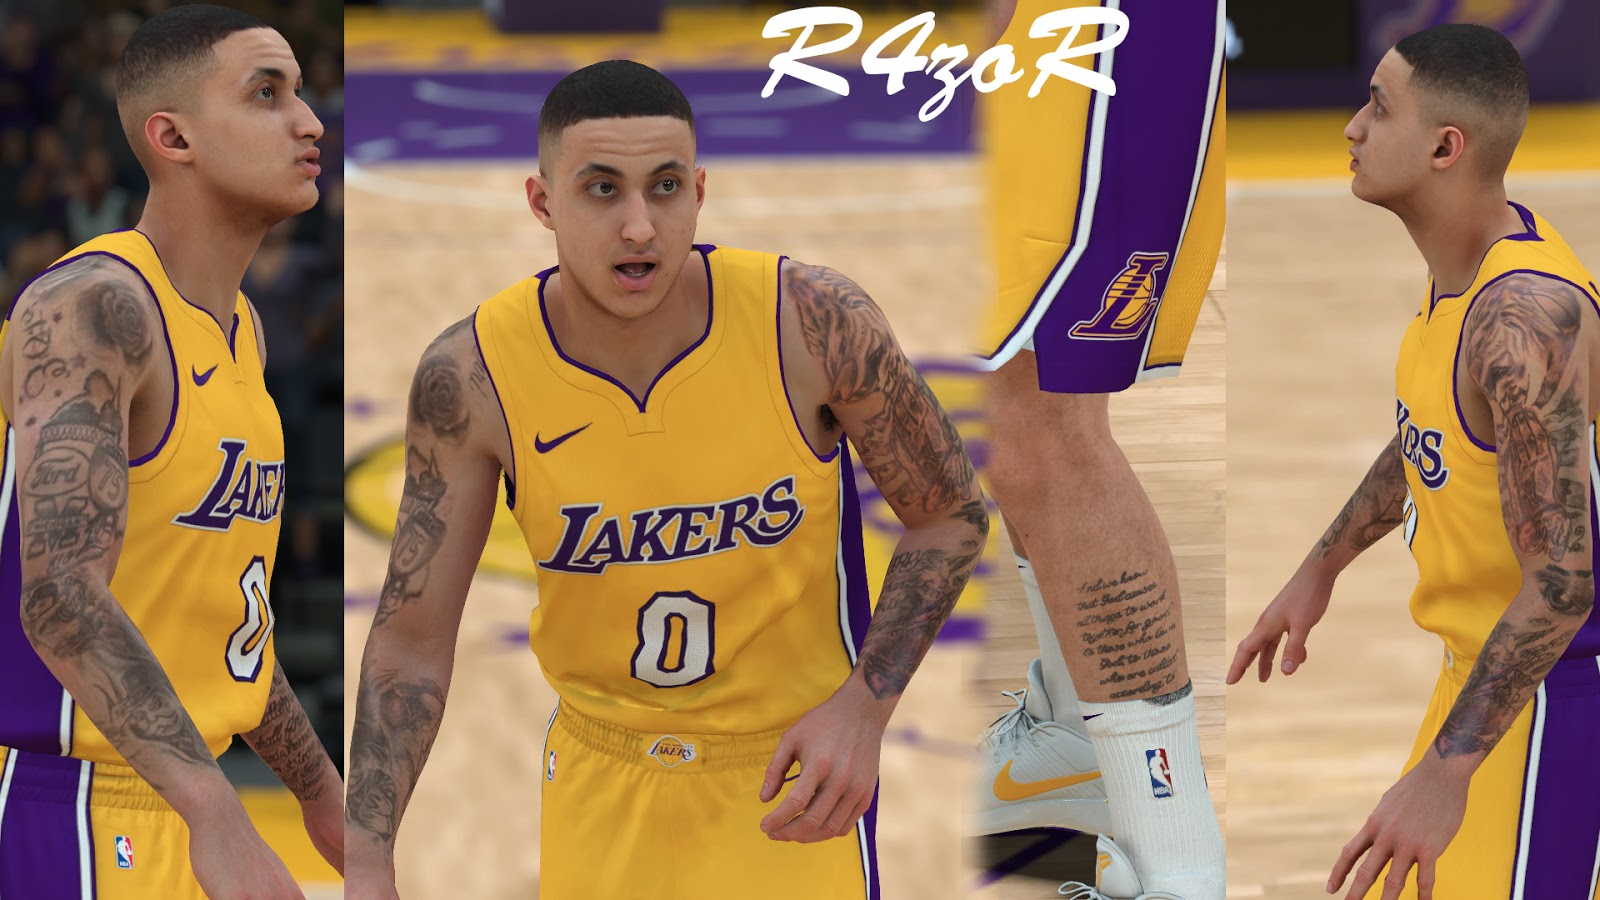 DNA Of Basketball | DNAOBB: NBA 2K18 Kyle Kuzma's tattoos ...